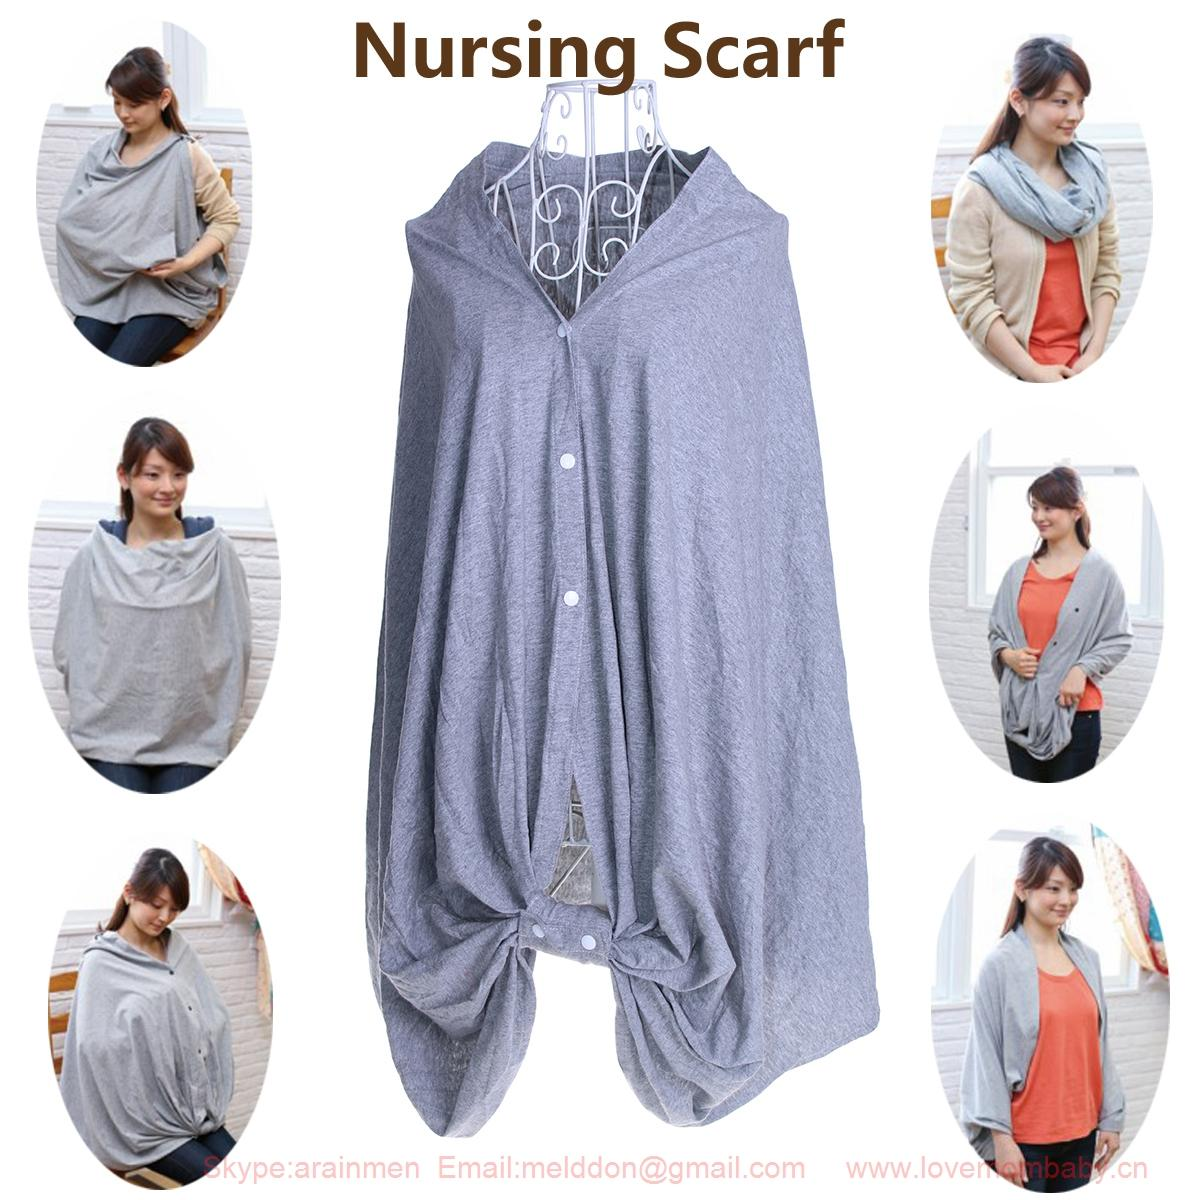 489aae077d1 Sandexica Nursing Scarf Breast Feeding Cover Up Multifunctional Breast  Feeding Poncho Nursing Cover Feeding Tube Extension Set G Tube Feeding Bags  From ...